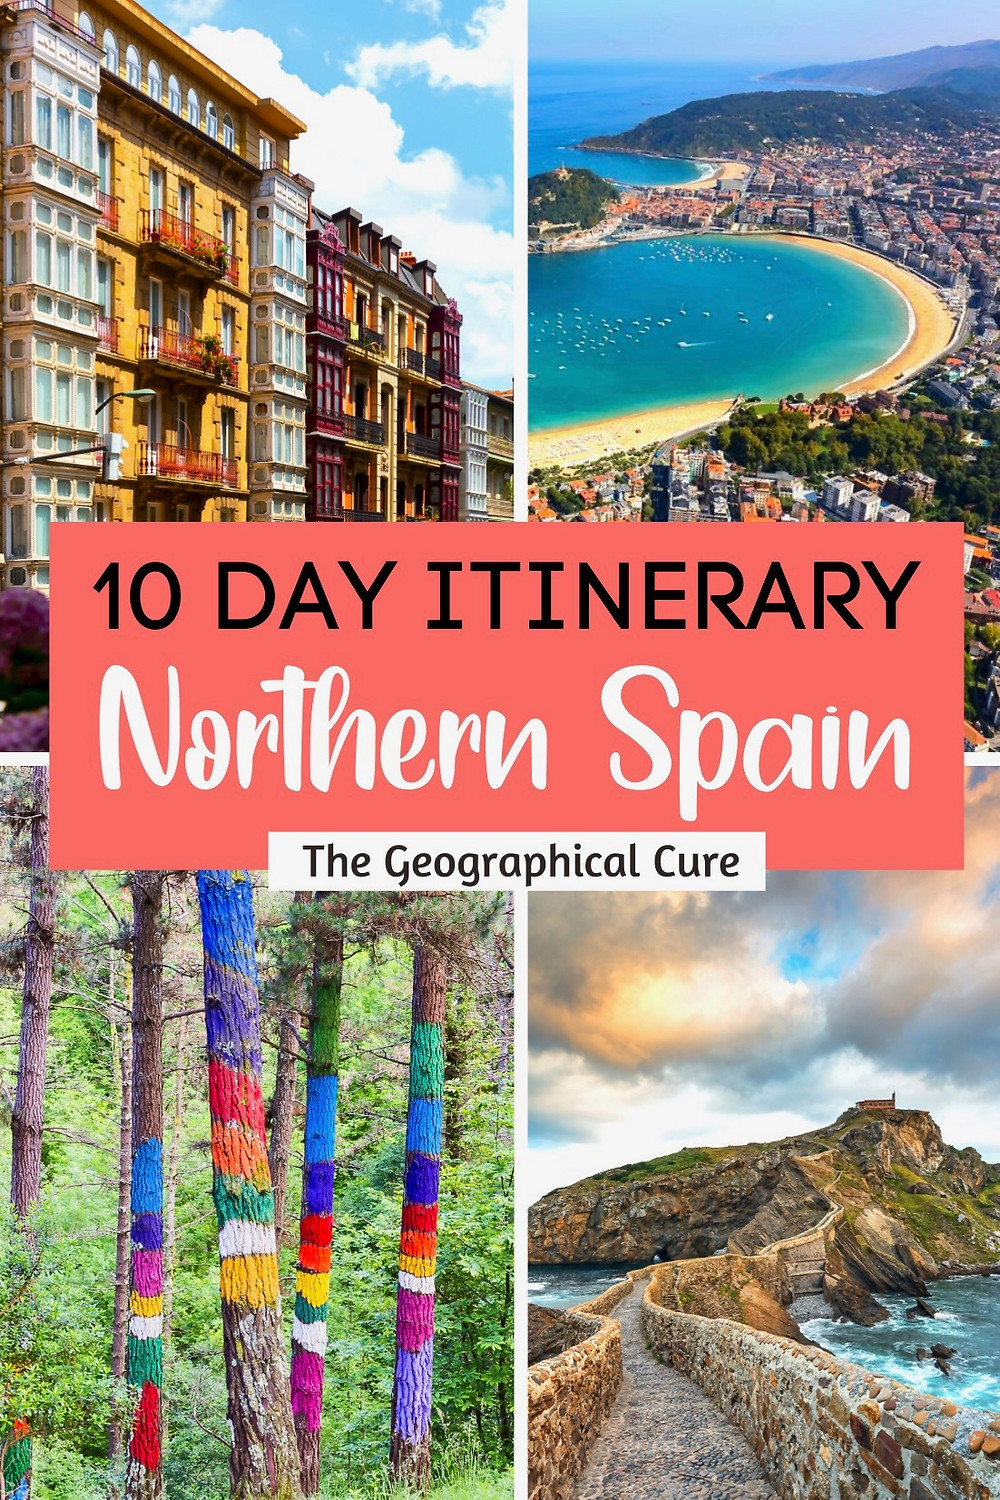 10 Day Itinerary Northern Spain